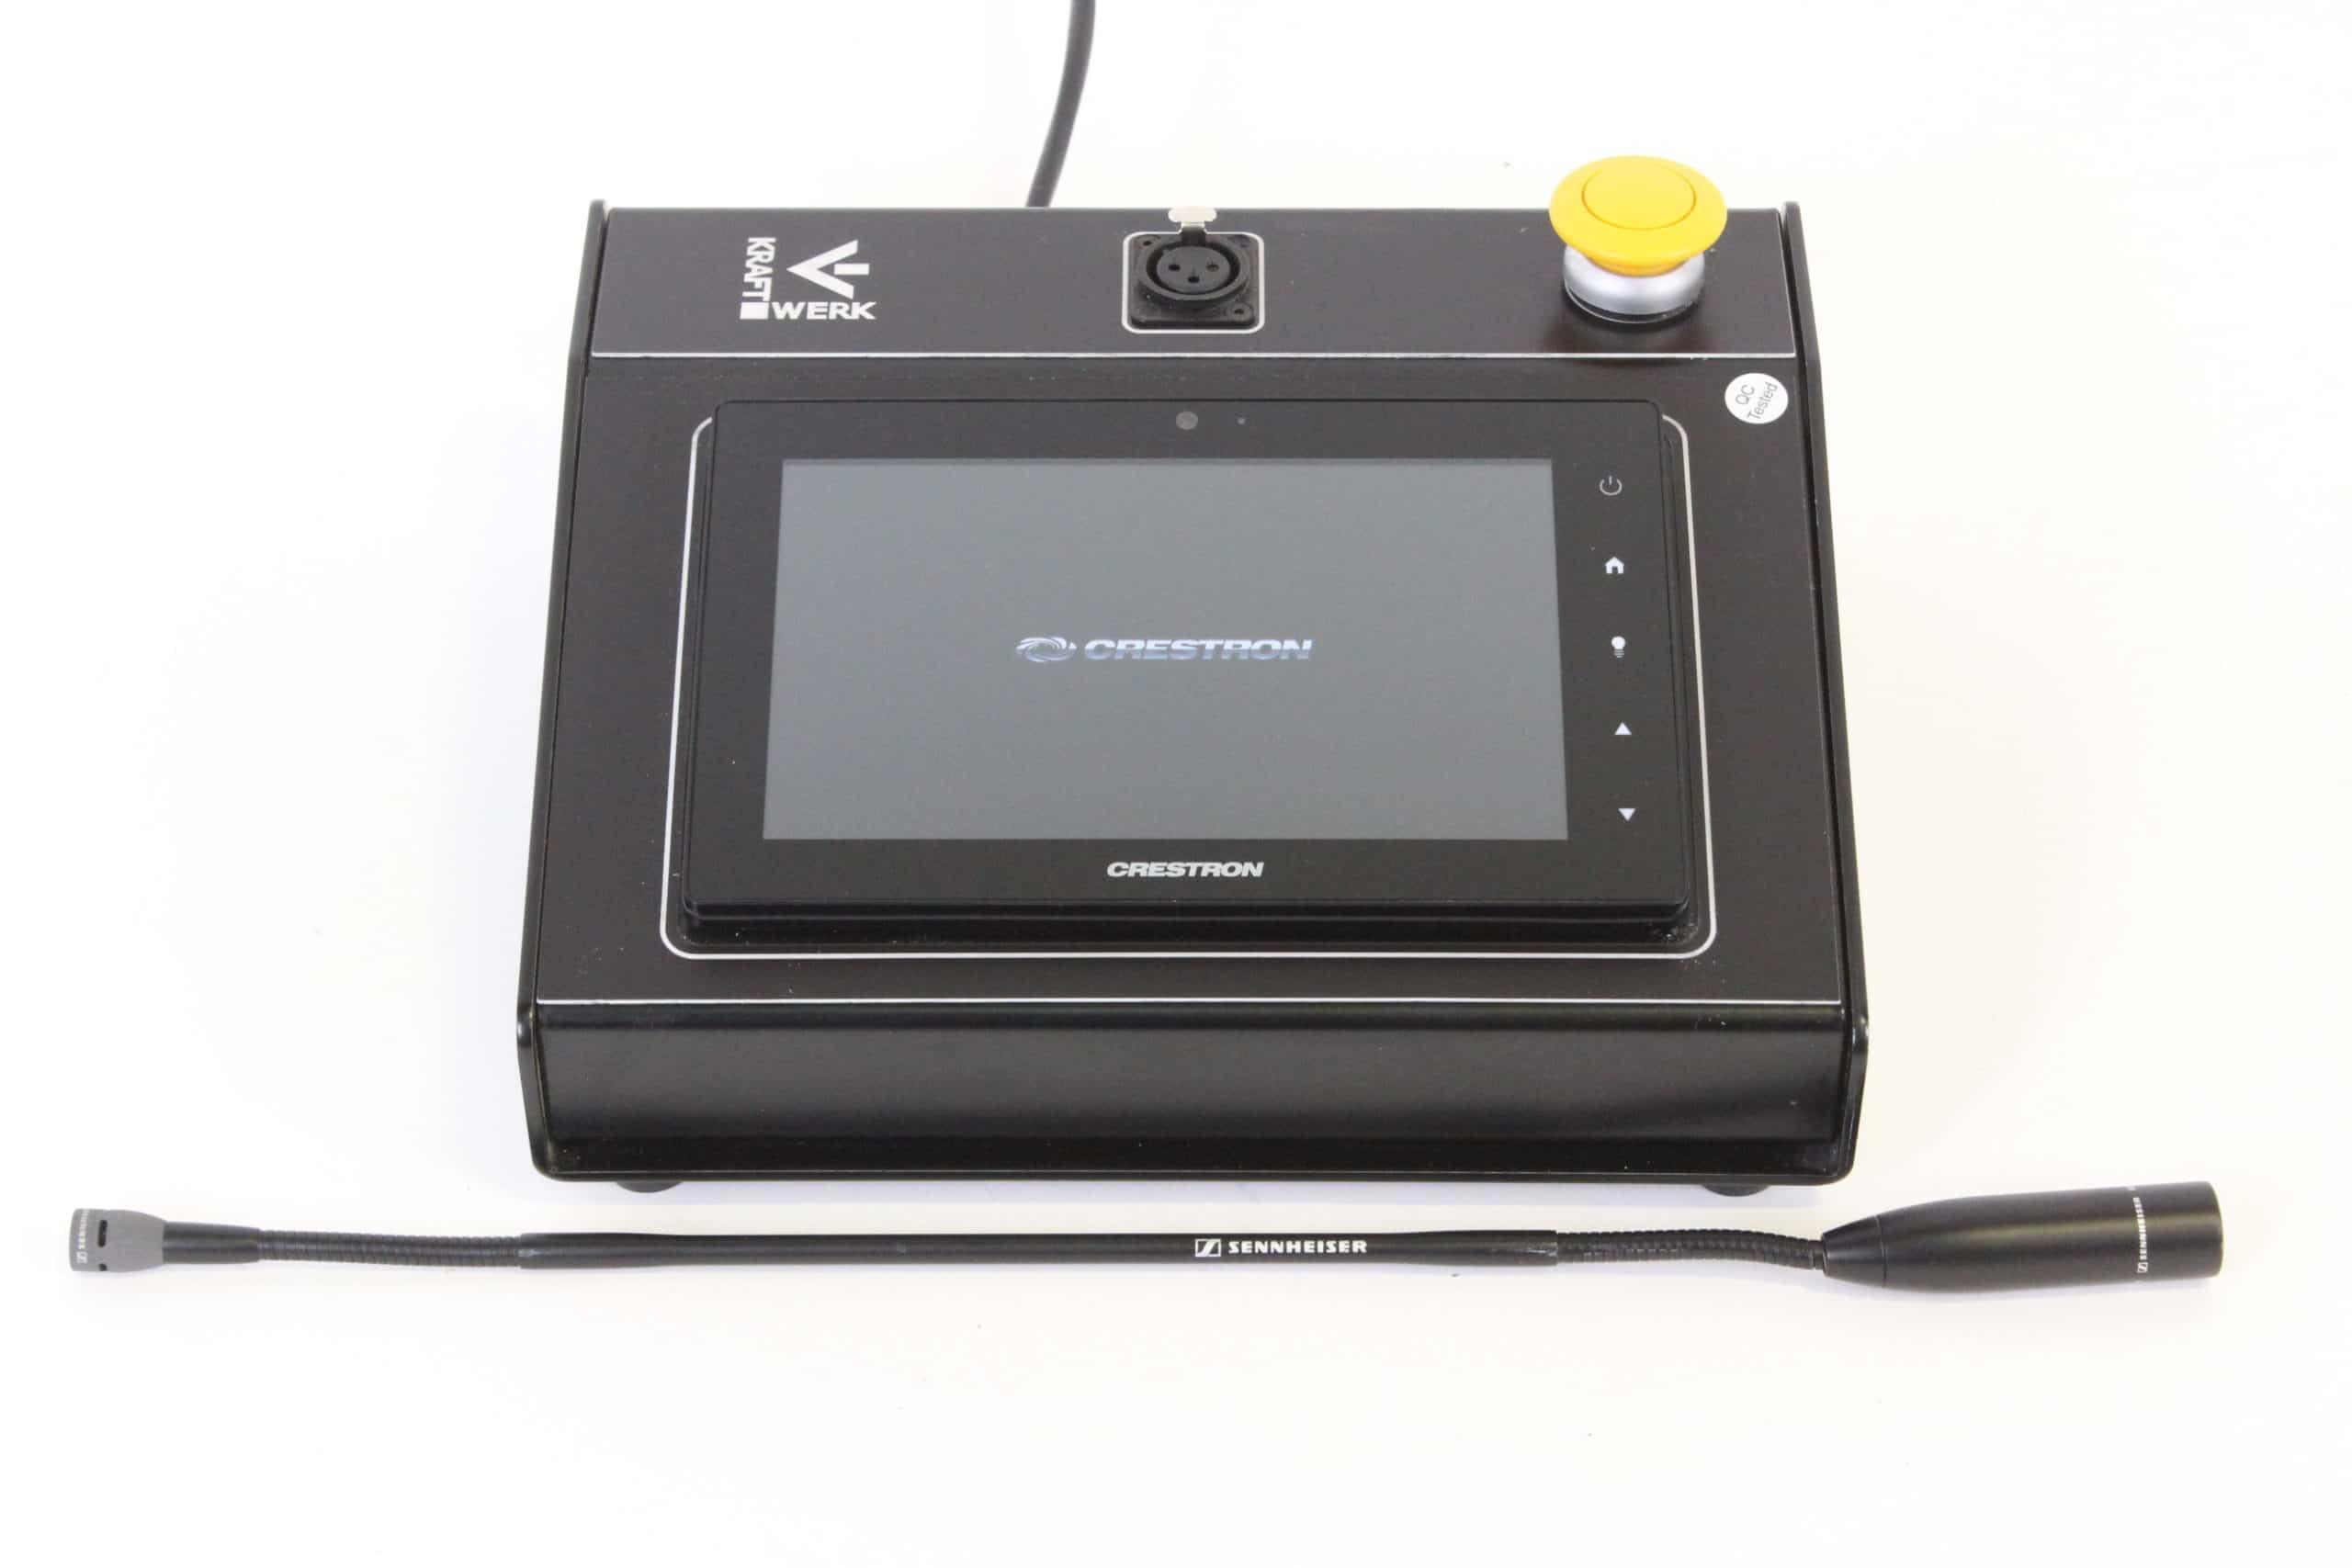 crestron-tsw-760-bs-7-touch-screen-black-smooth-w-button-sennheiser-me-34-nx-gooseneck-microphone main